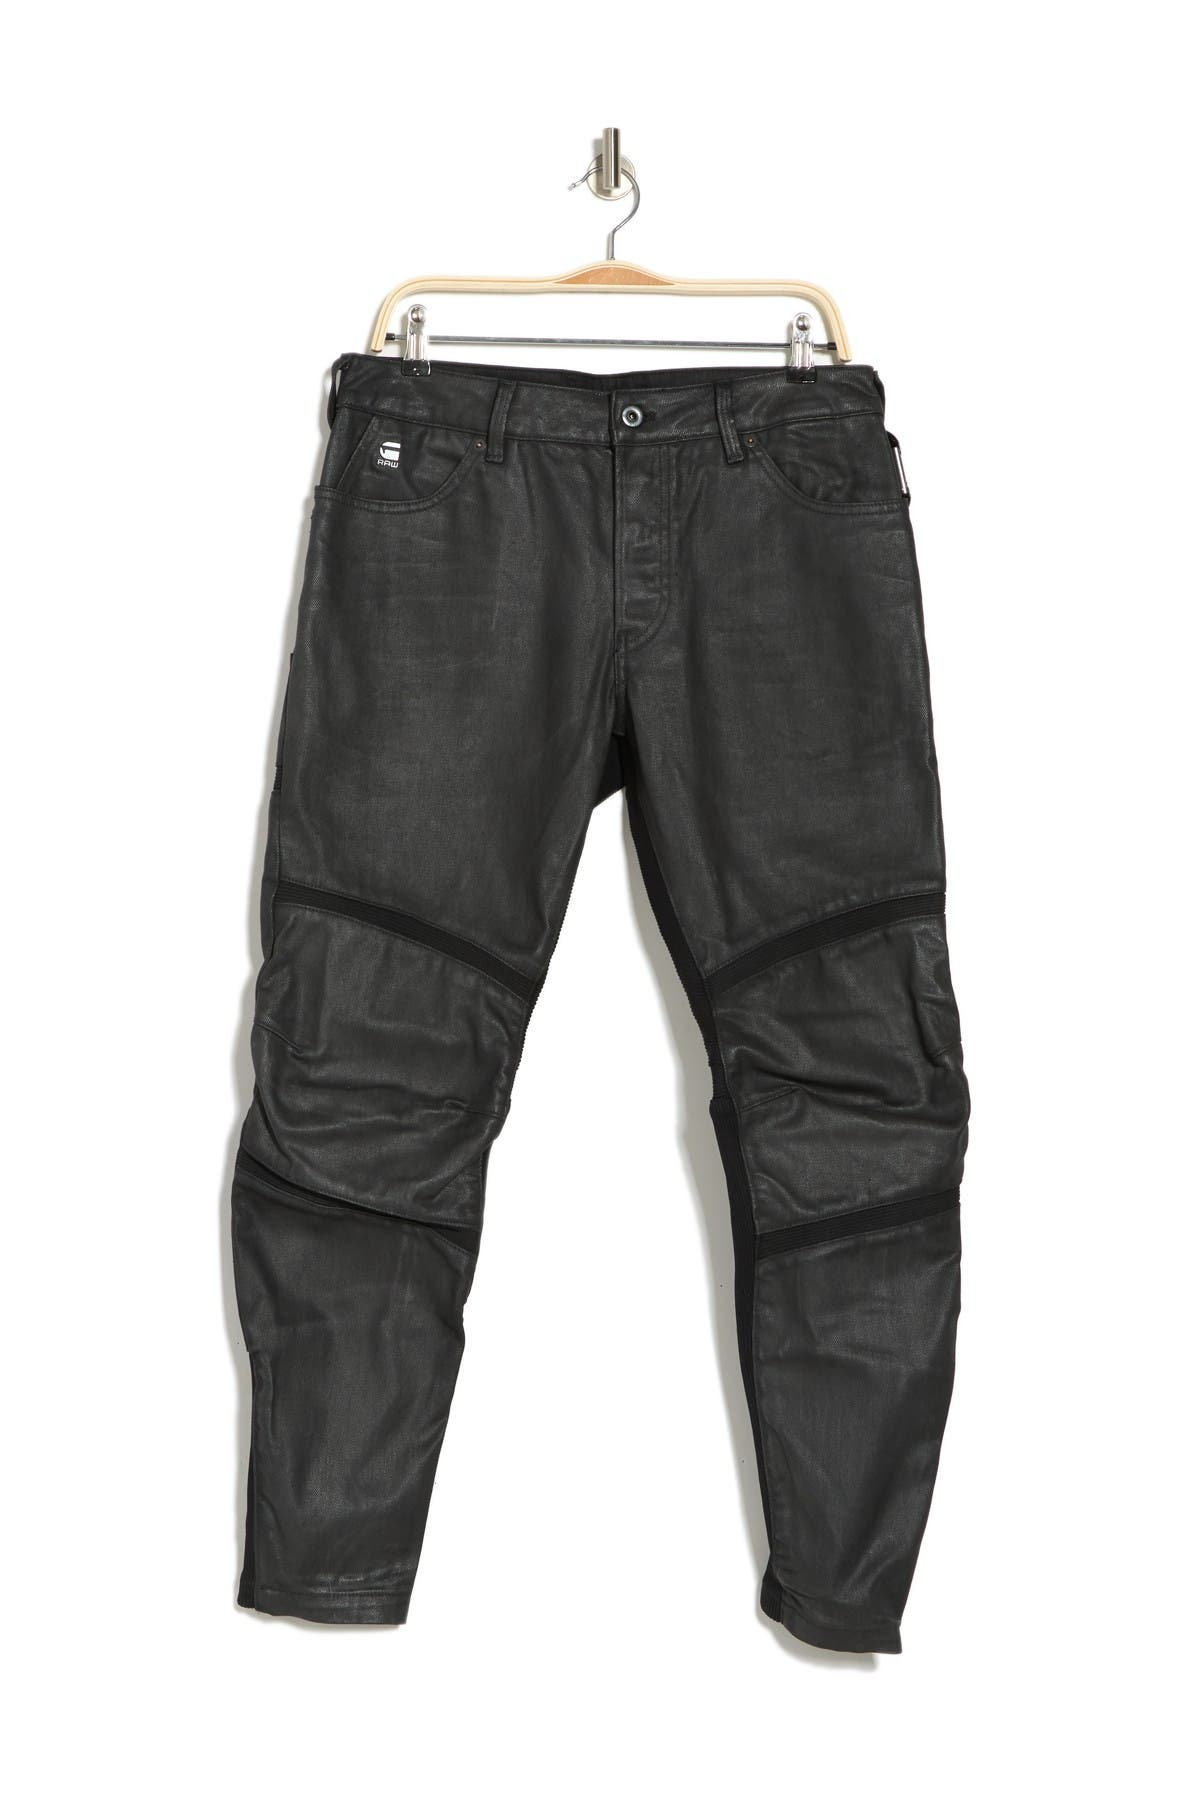 Image of G-STAR RAW Motac 3D Slim Fit Jeans